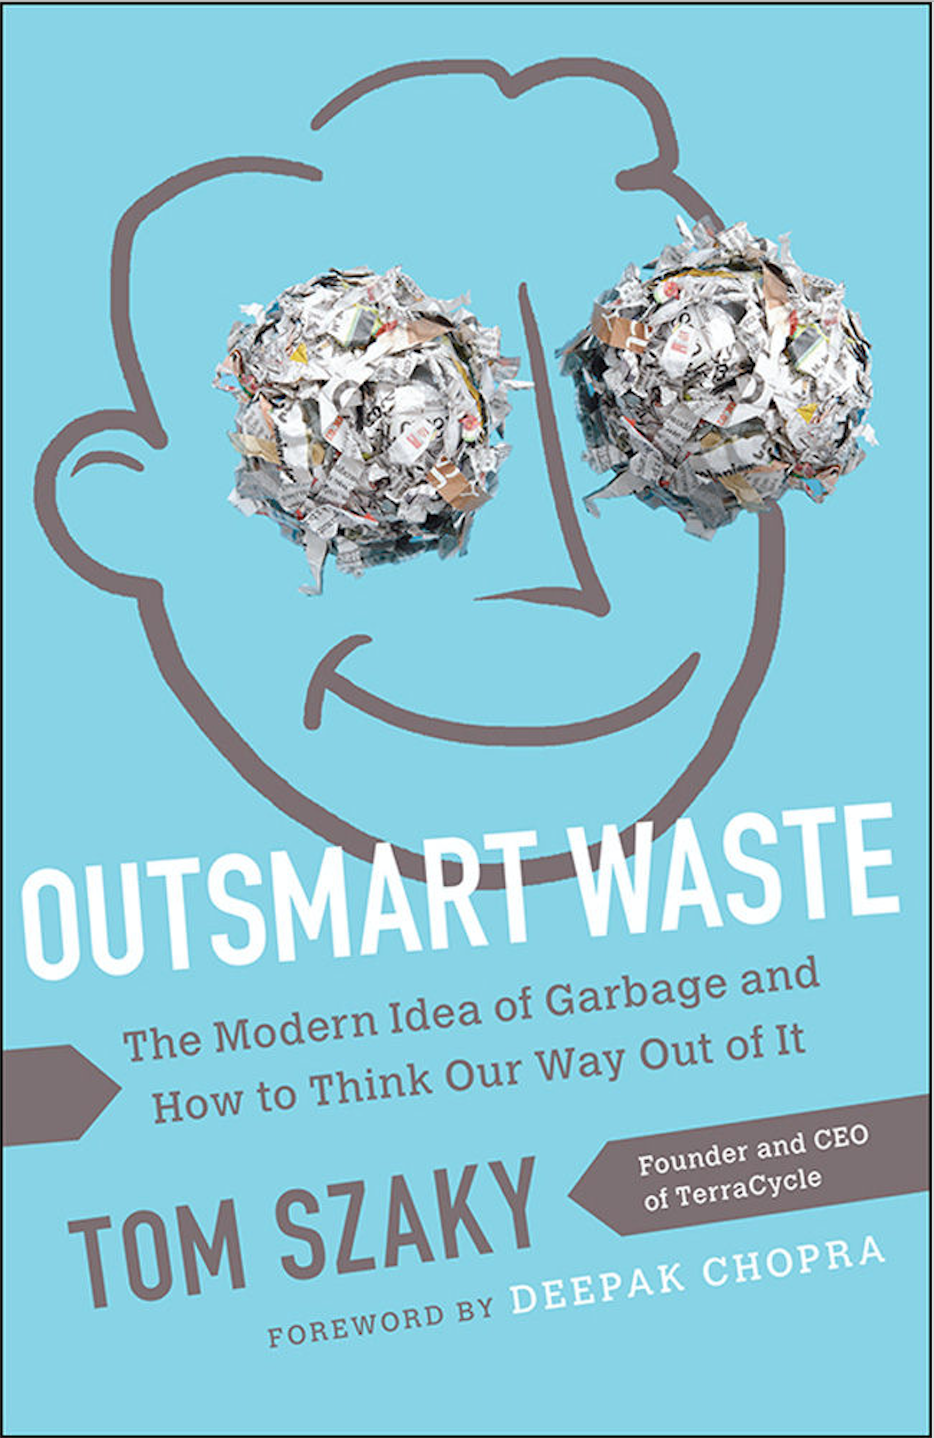 outsmart waste 2.png